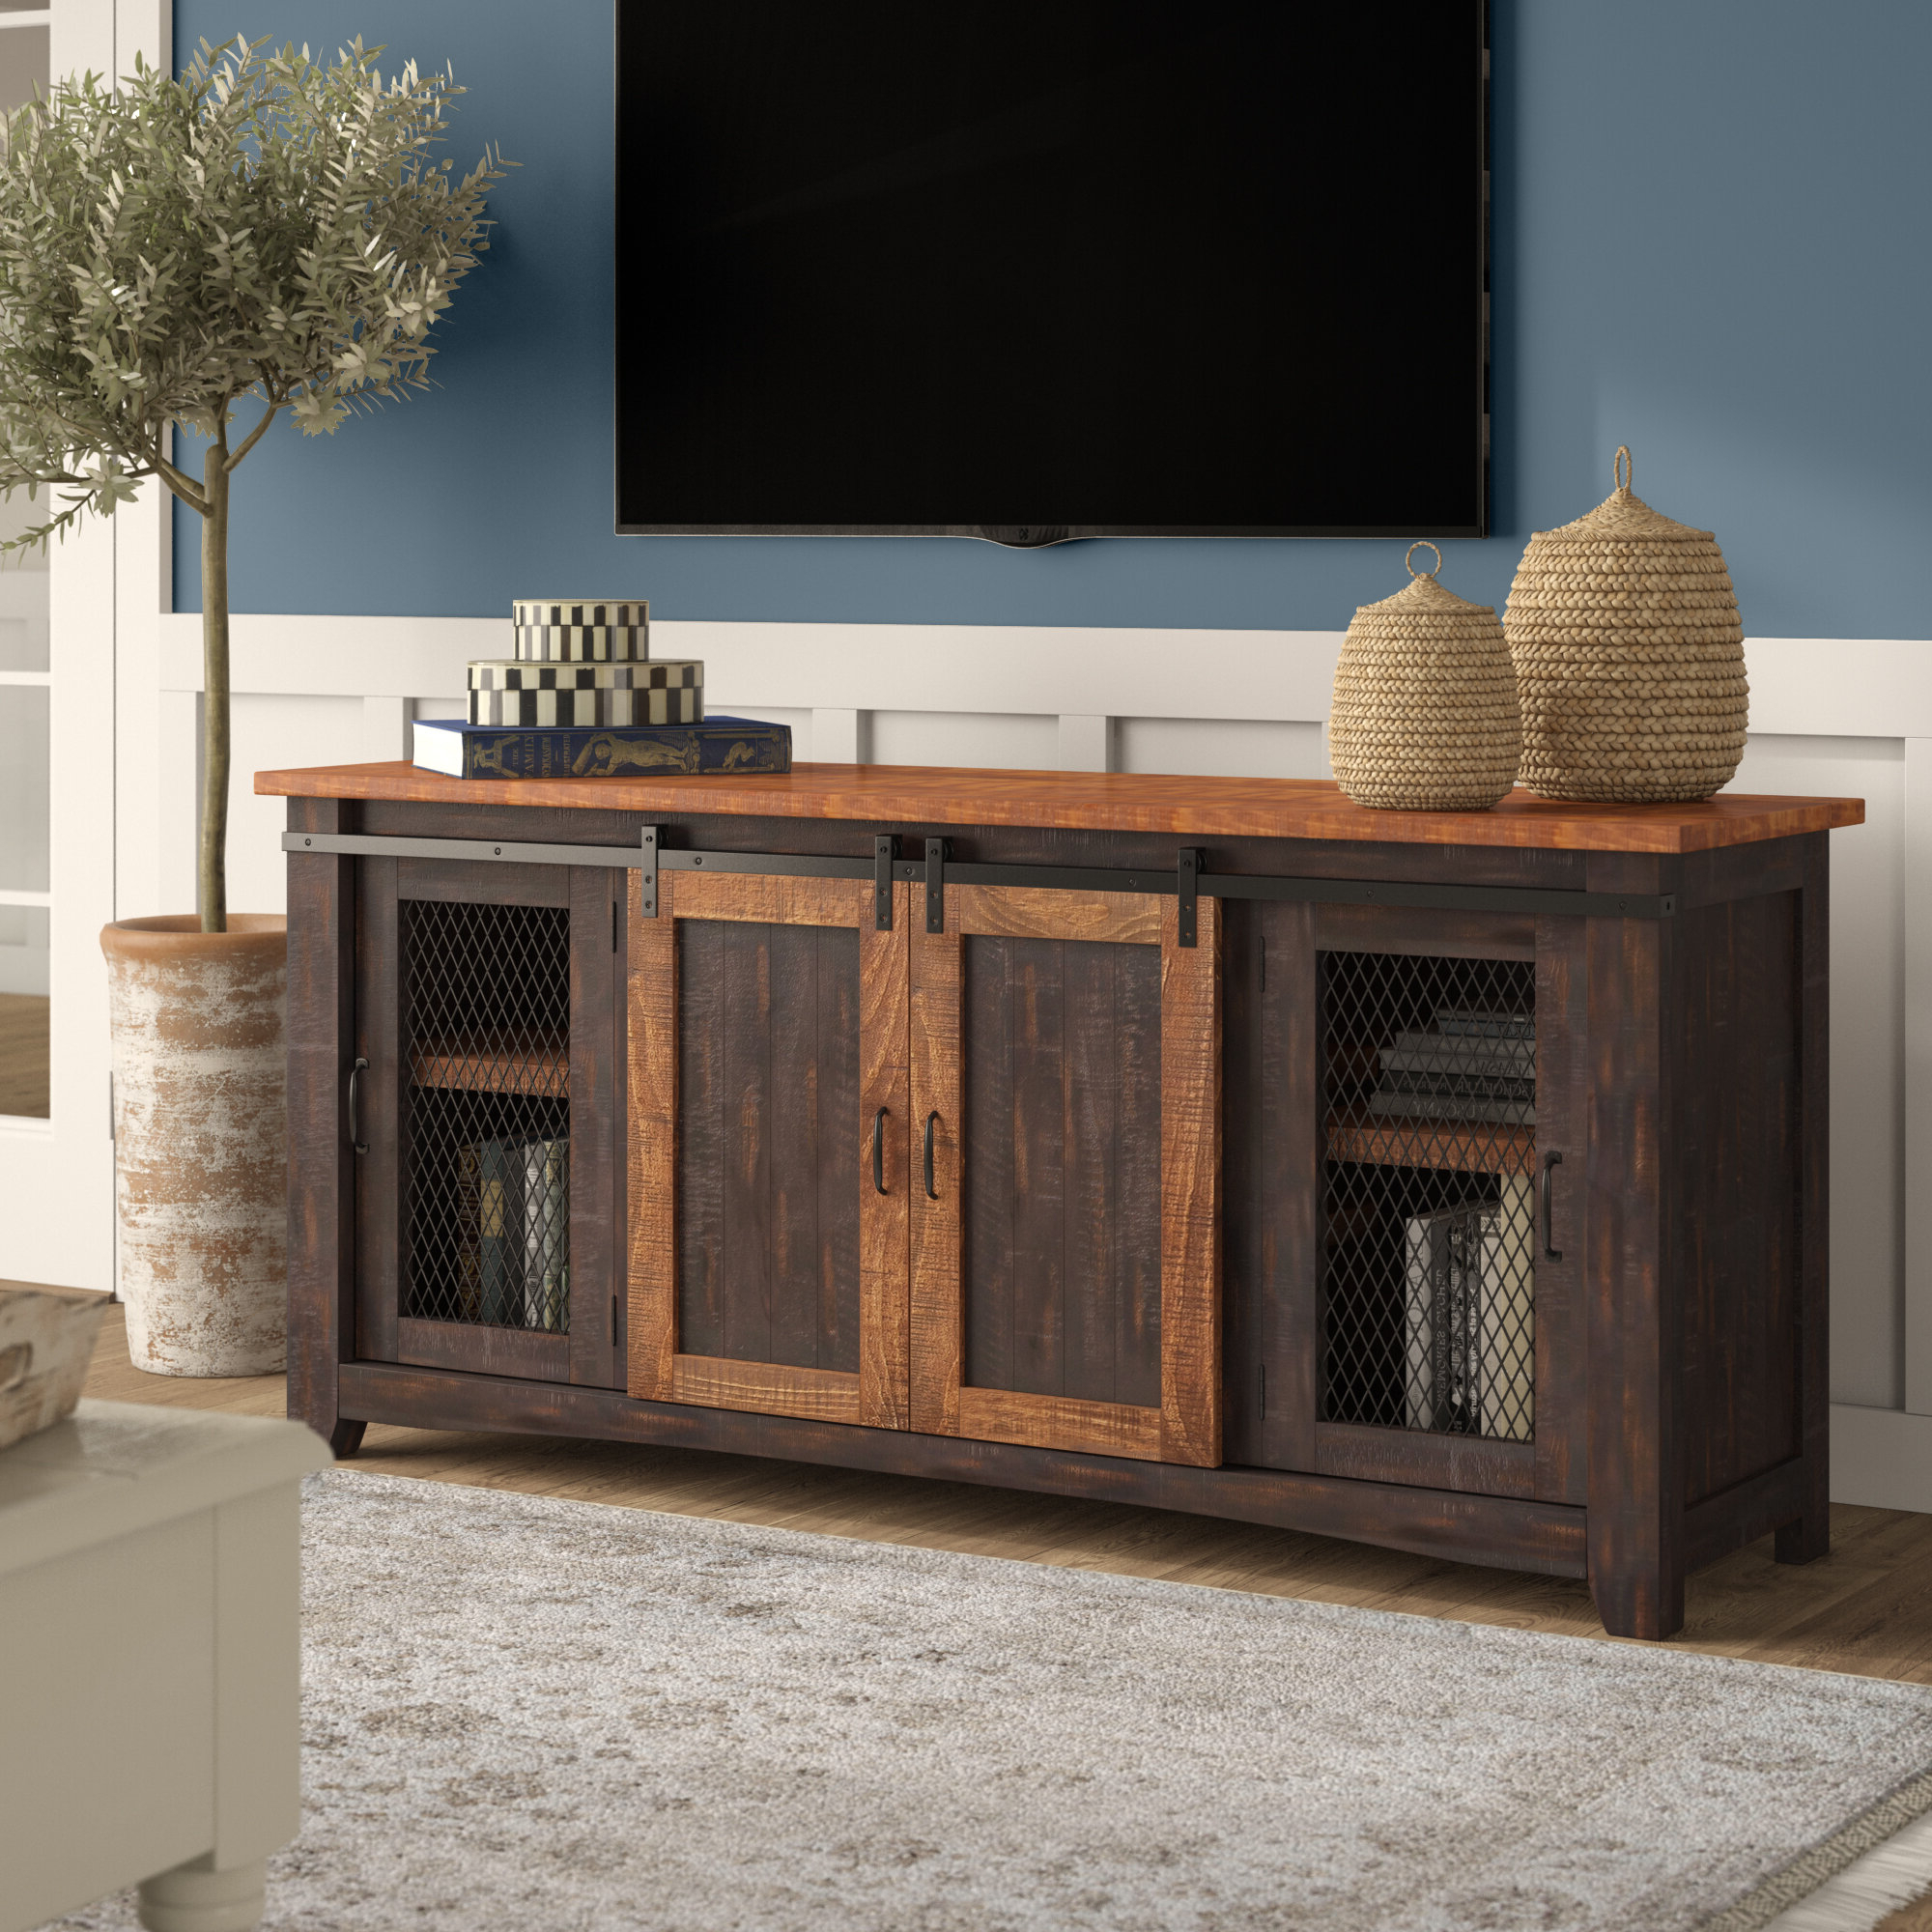 "2019 Gracie Oaks Belen Tv Stand For Tvs Up To 70"" With Colefax Vintage Tv Stands For Tvs Up To 78"" (View 8 of 20)"